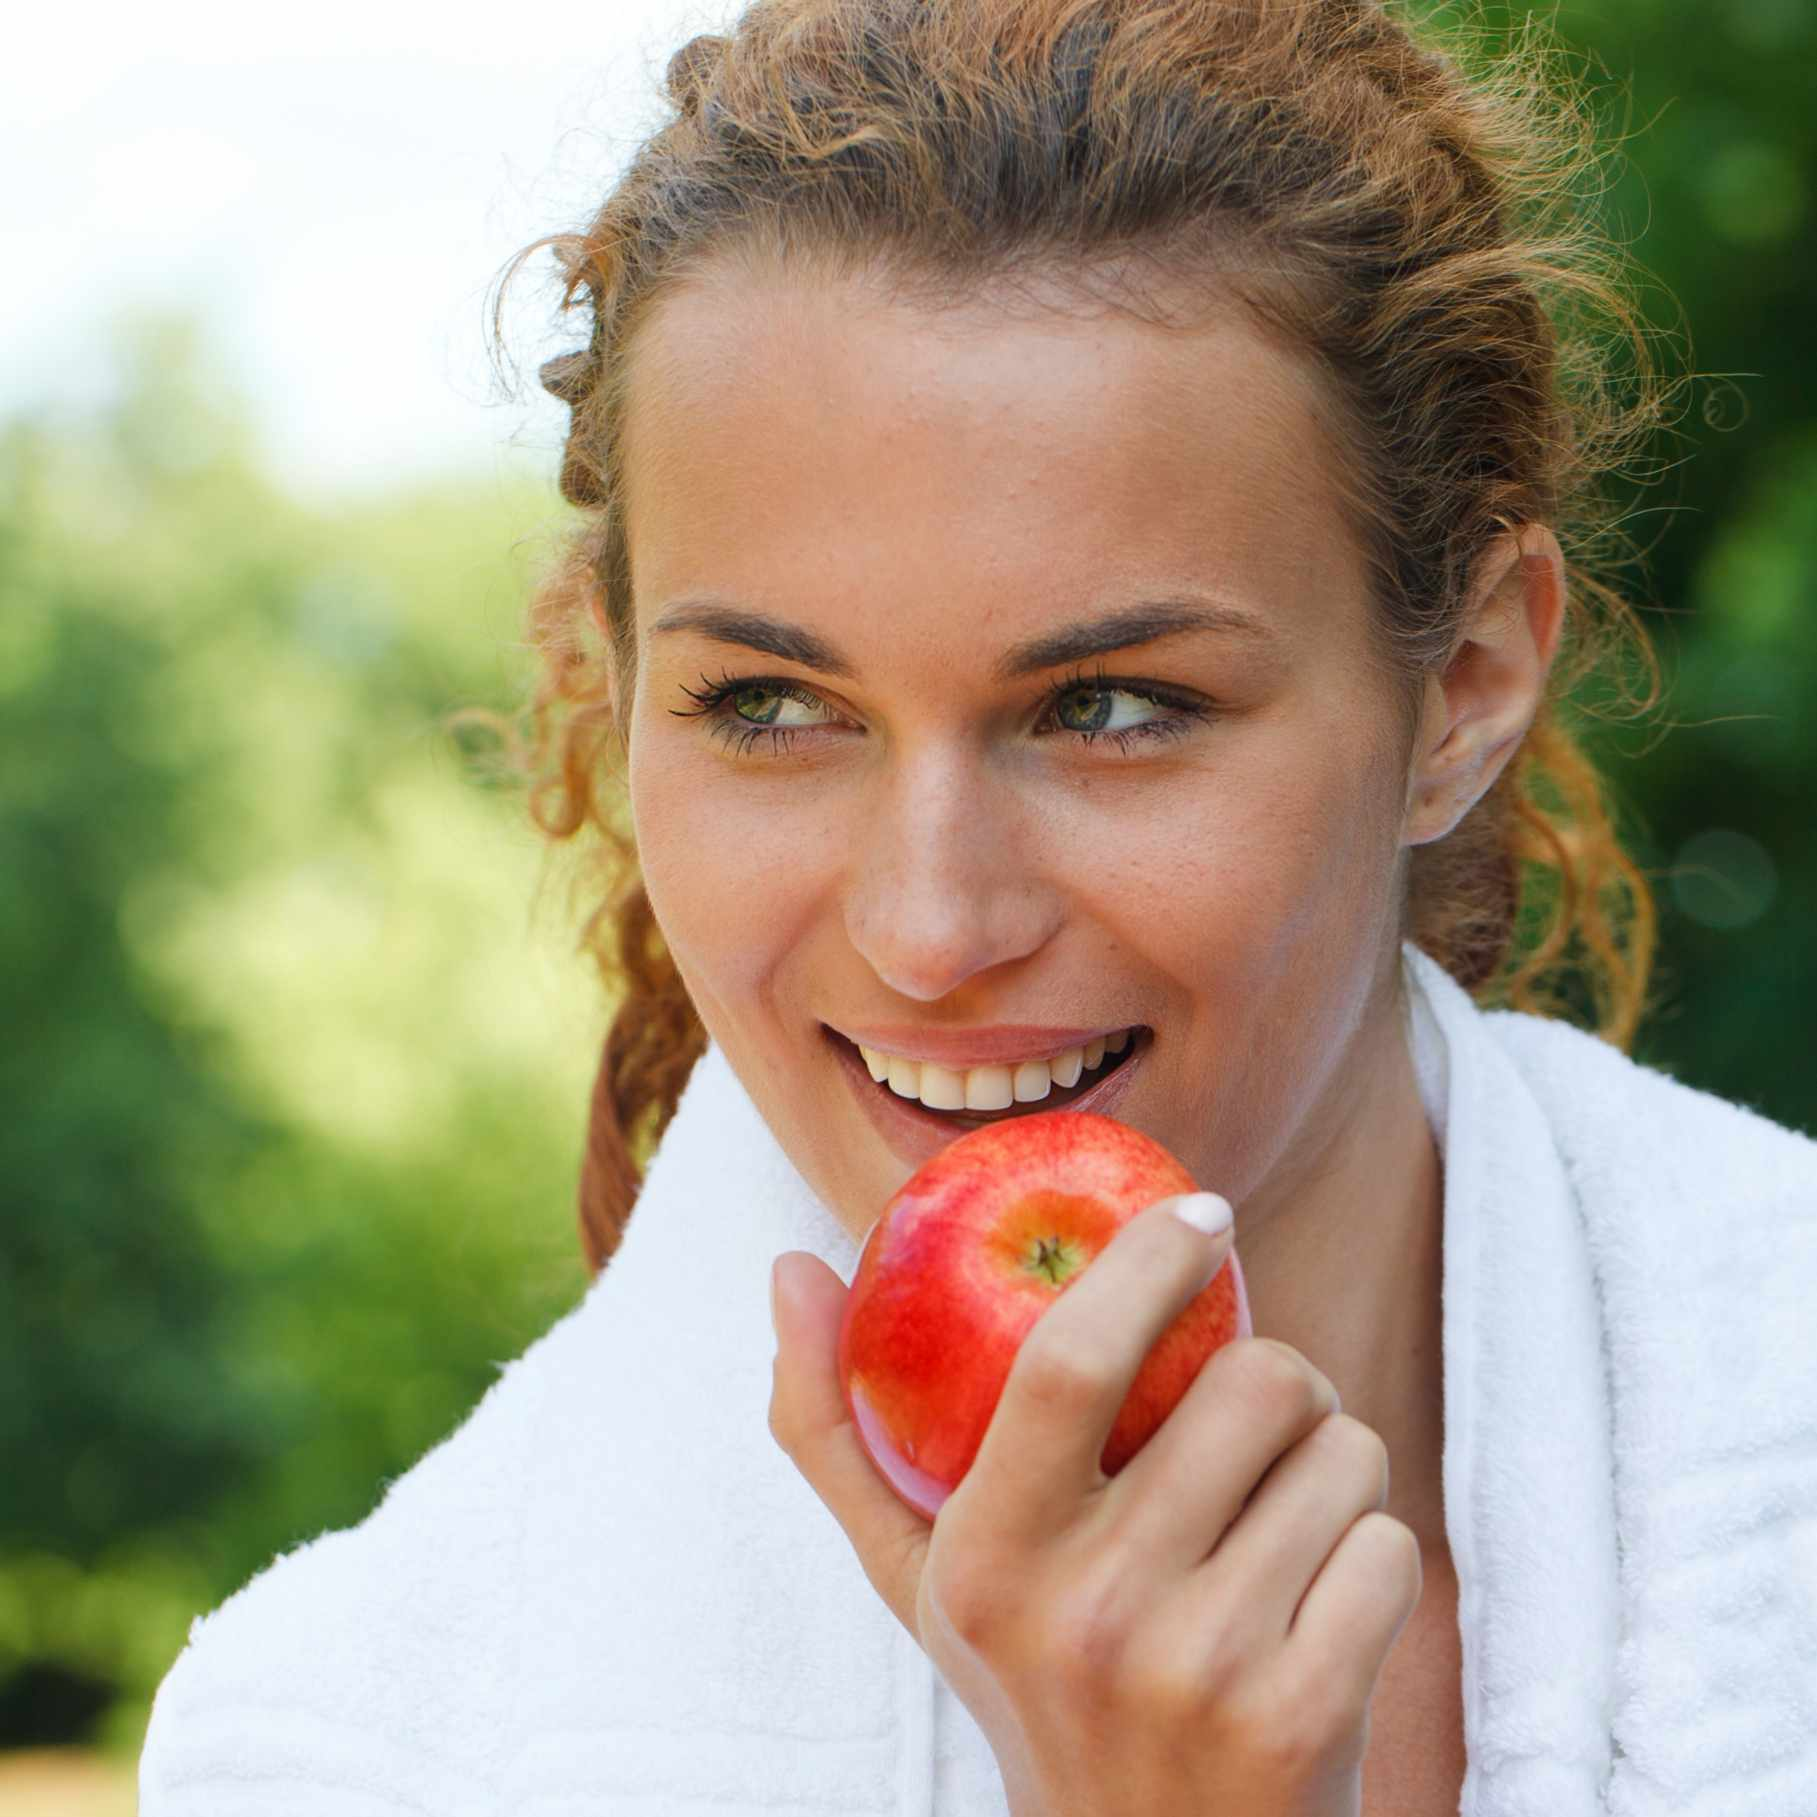 a woman eating an apple for good health and nutrition after exercising